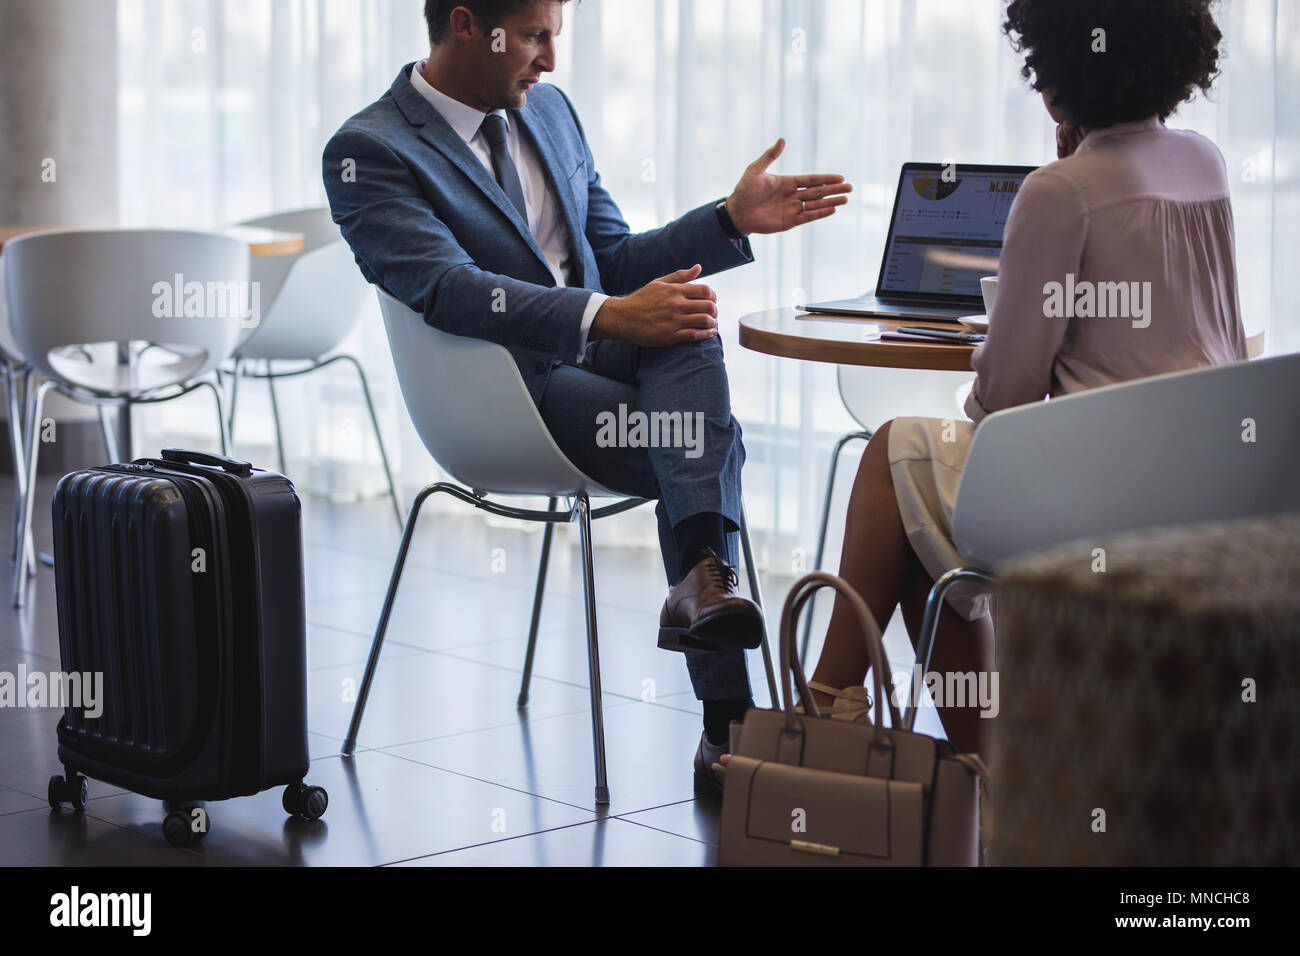 Business man showing something to woman while sitting at airport lounge. Business people working on laptop while waiting for their flight. - Stock Image